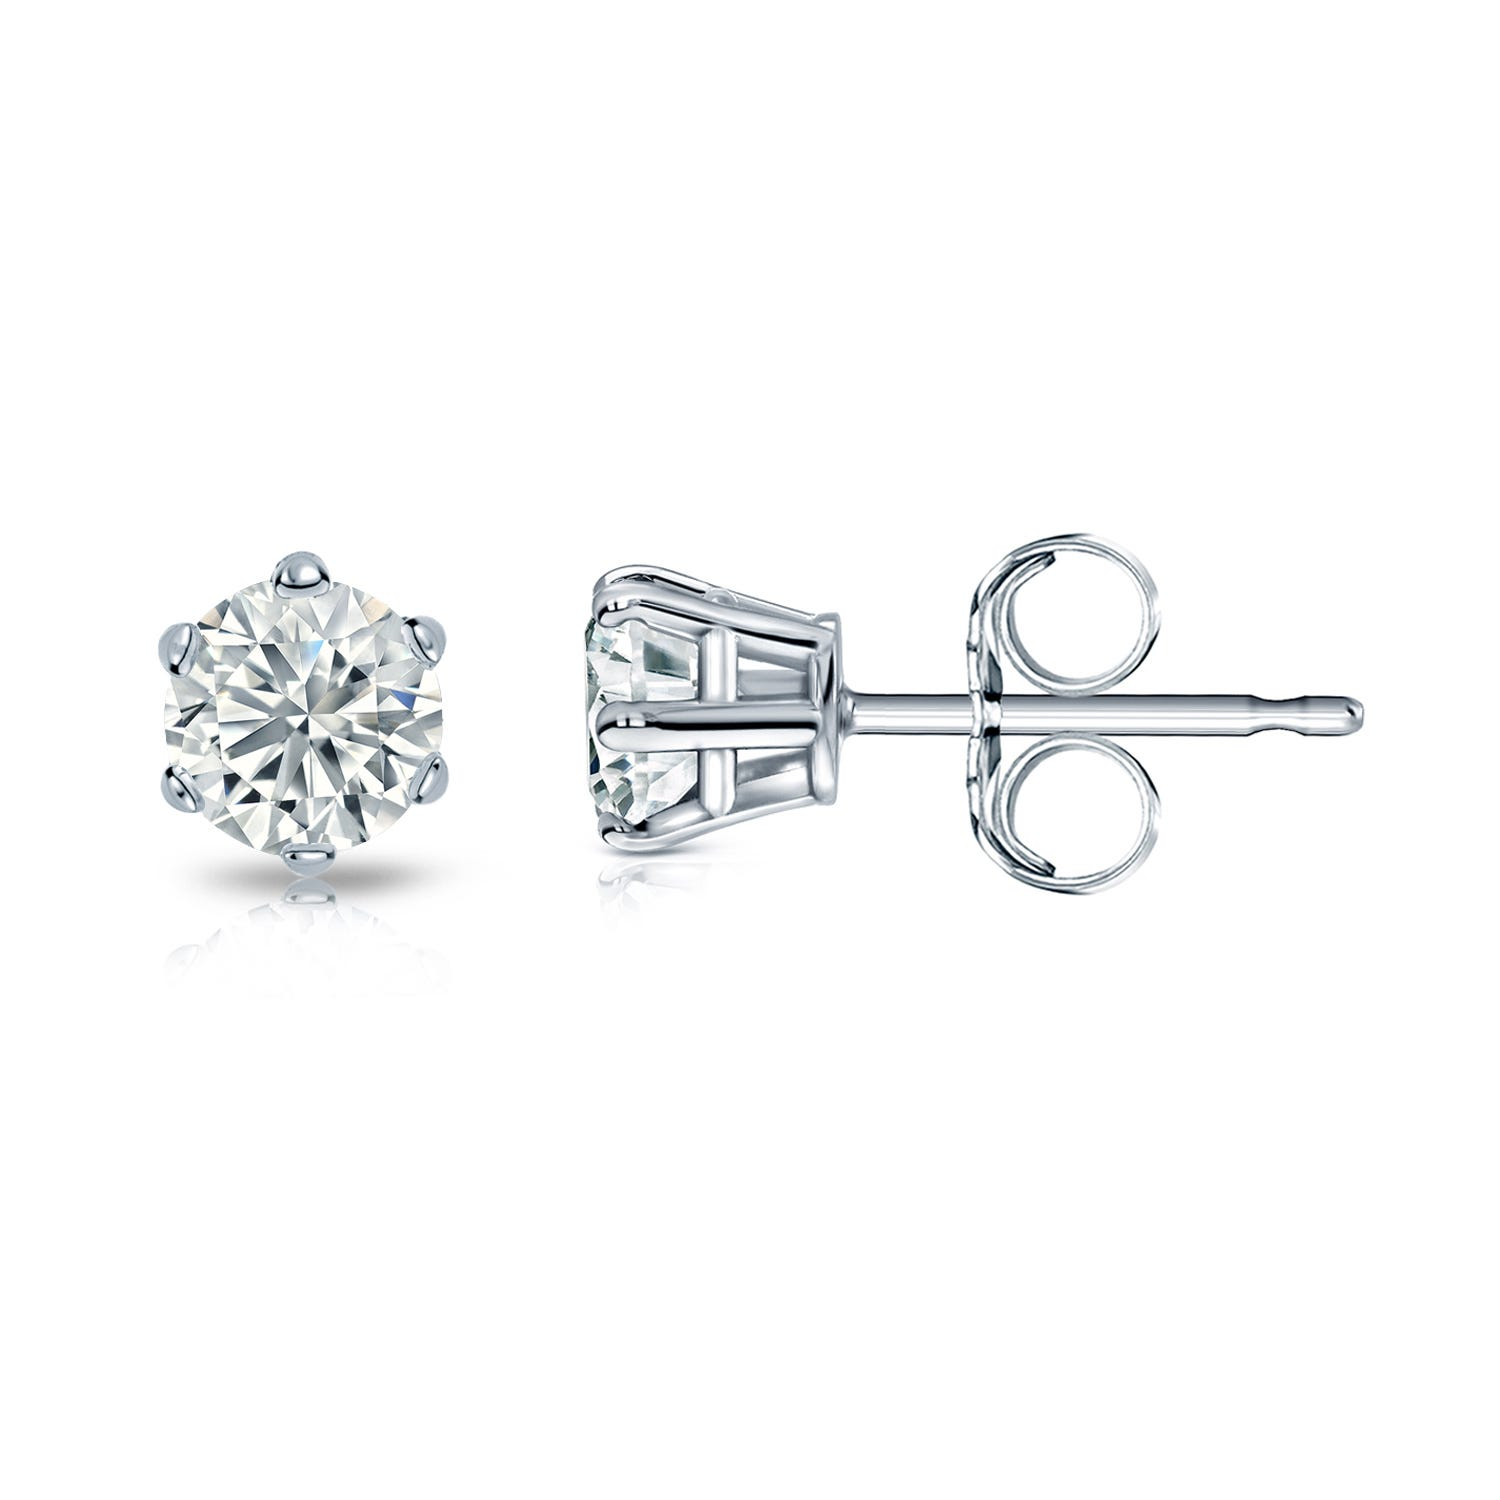 Round Diamond 1/3ctw. (IJ-I1) Solitaire Stud 6-Prong Earrings in 14K White Gold